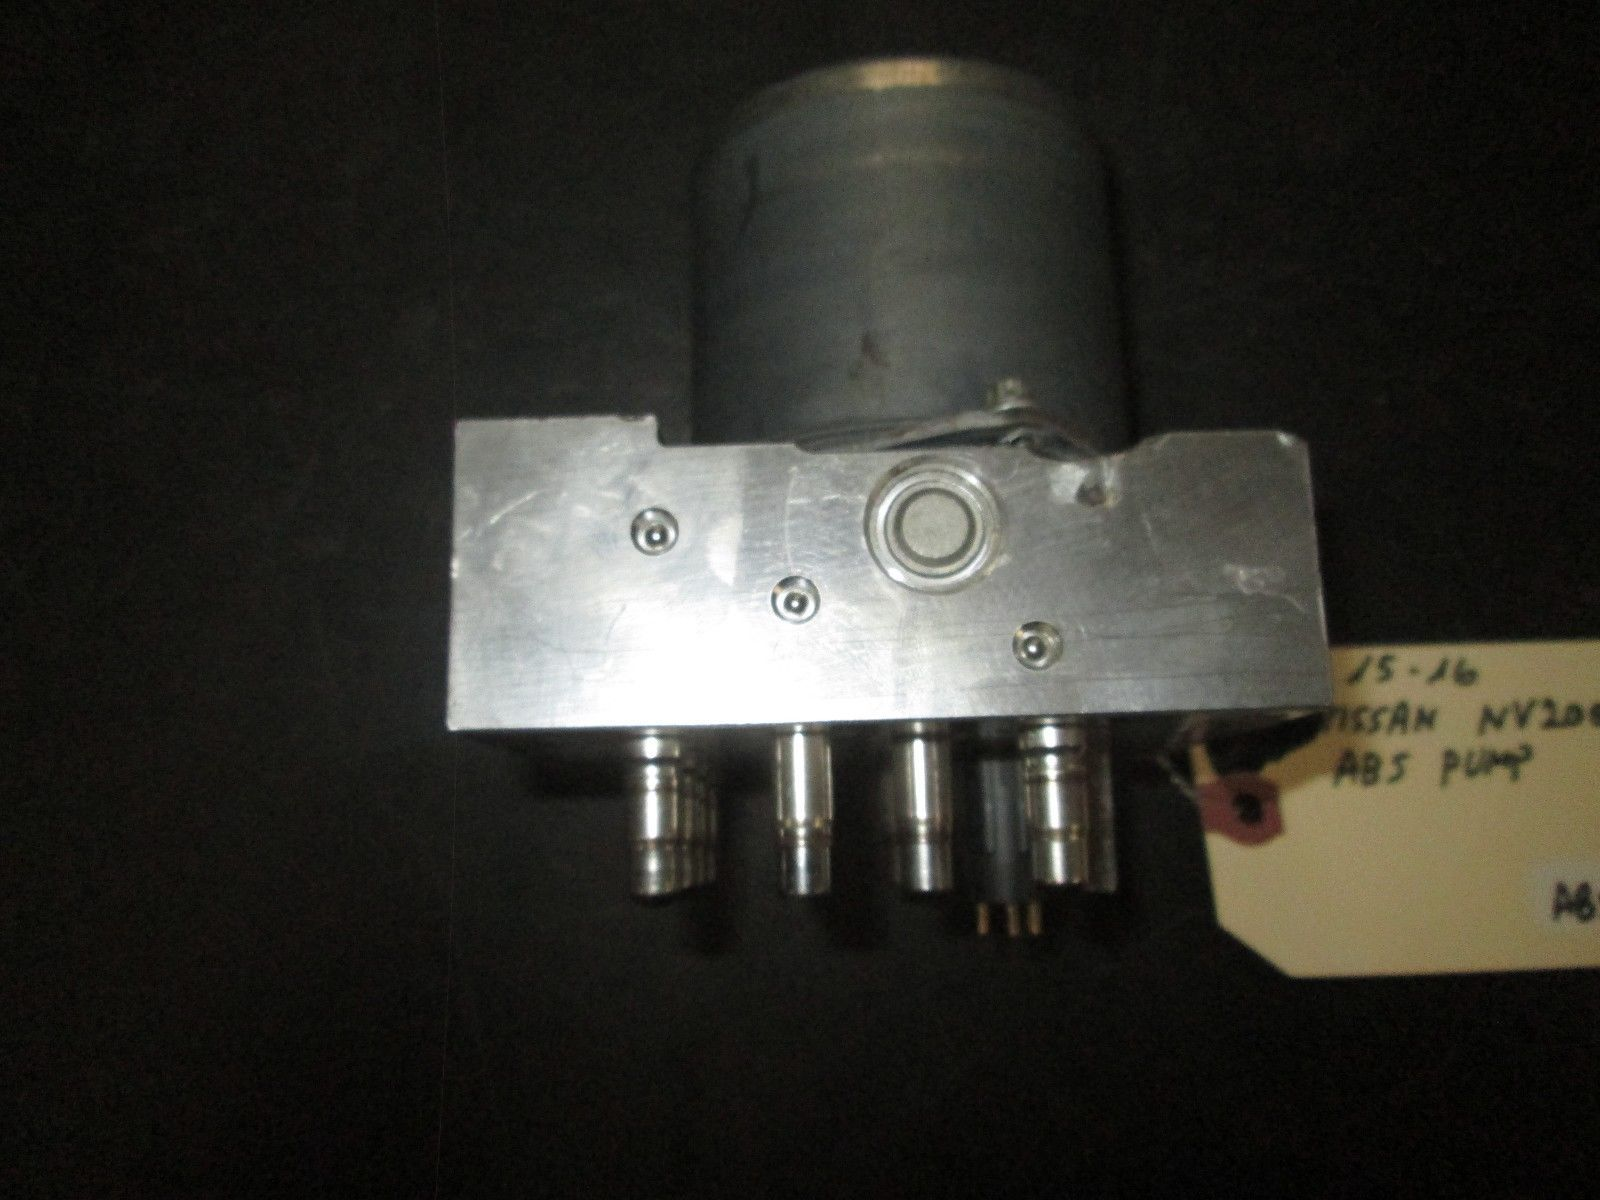 15 16 NISSAN NV200 VAN ABS PUMP *See item description*